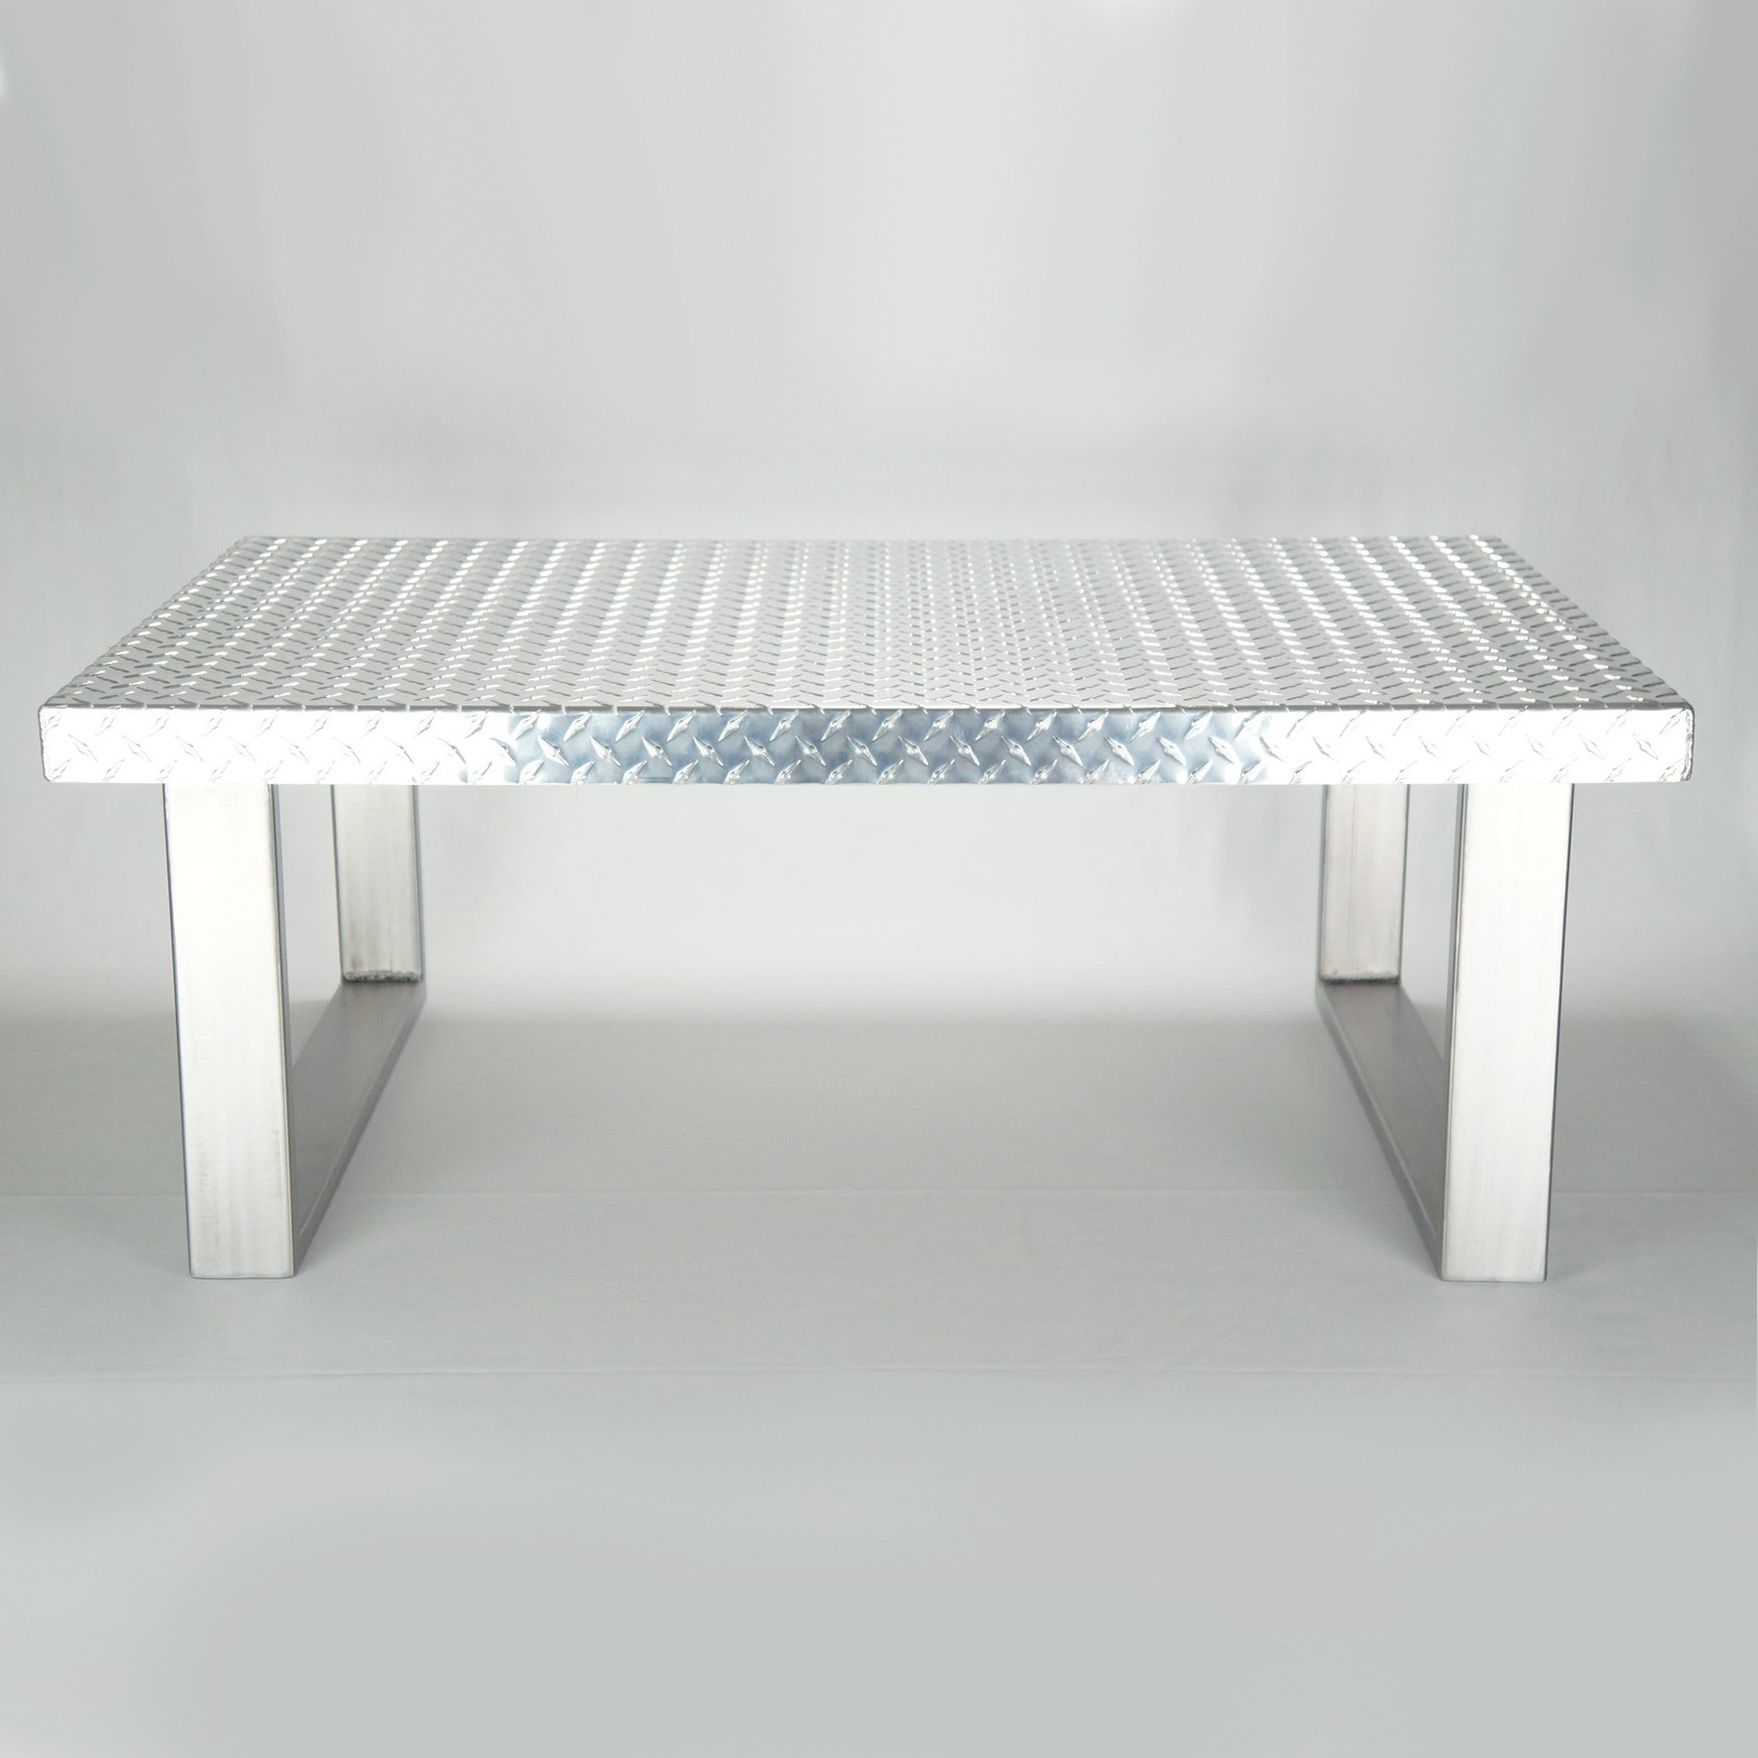 Hand Made Industrial Diamond Plate Metal Coffee Table By Ck Metalcraft Llc